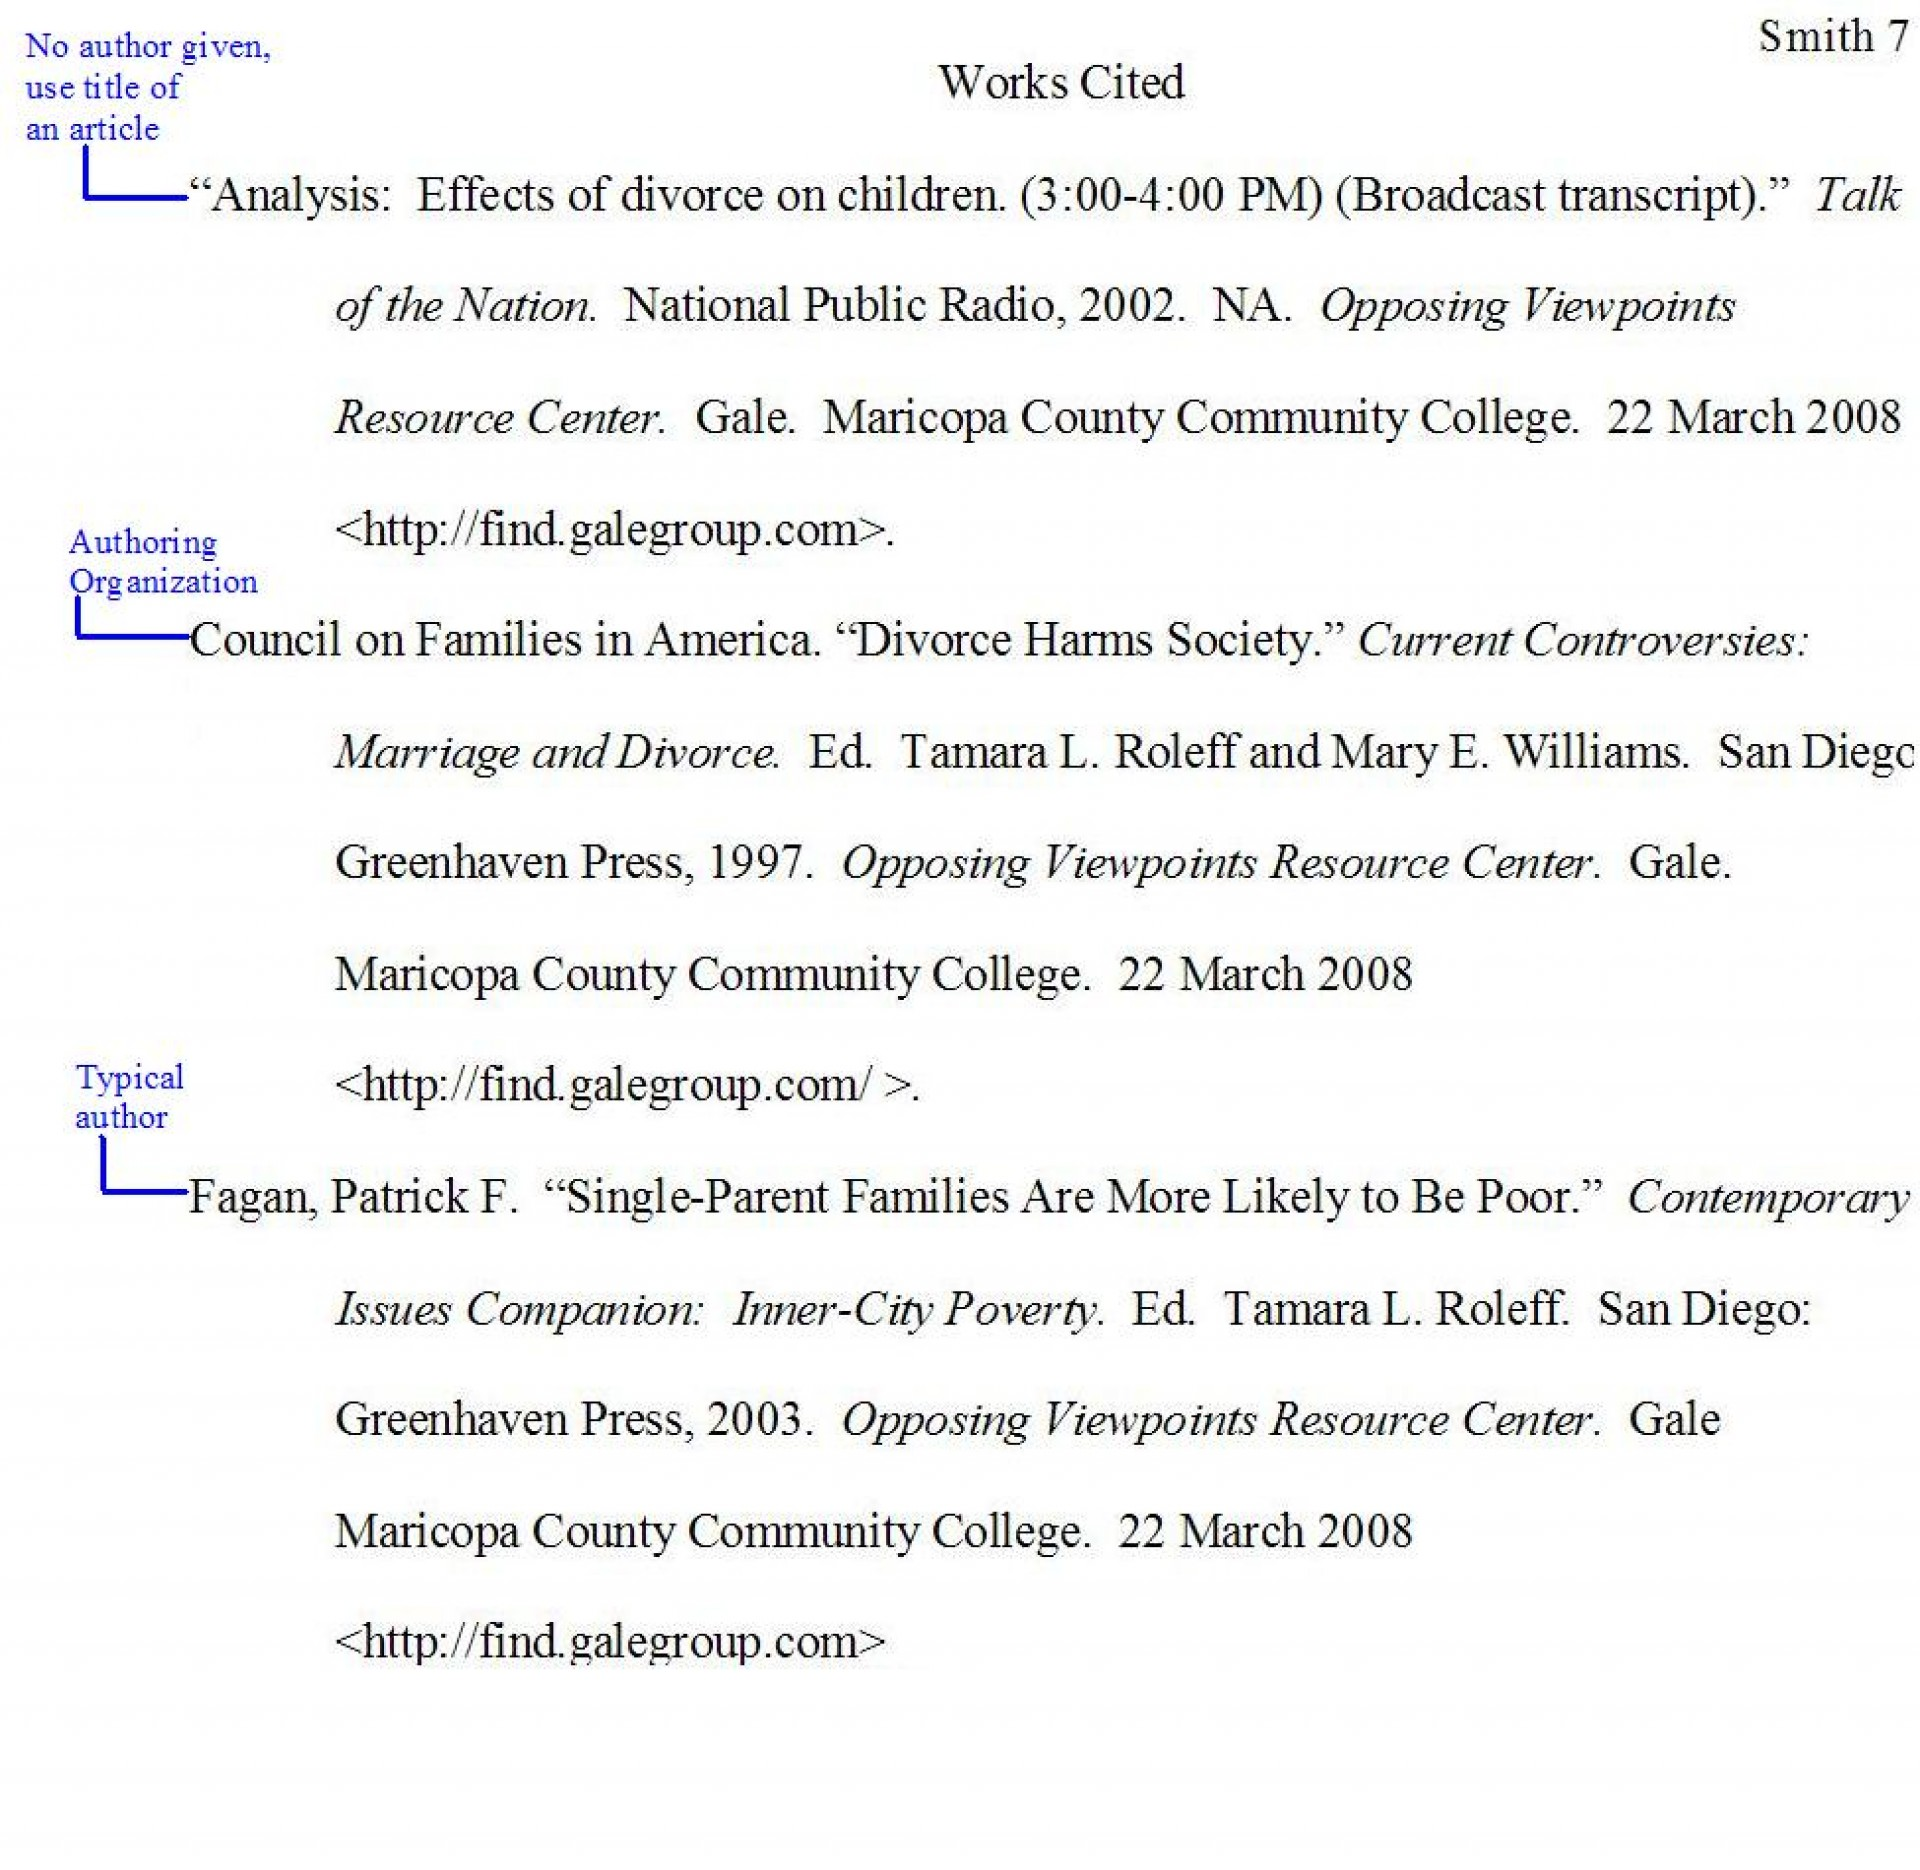 003 Cite Research Paper Samplewrkctd Remarkable Harvard Citing Another Apa Properly Sources 1920